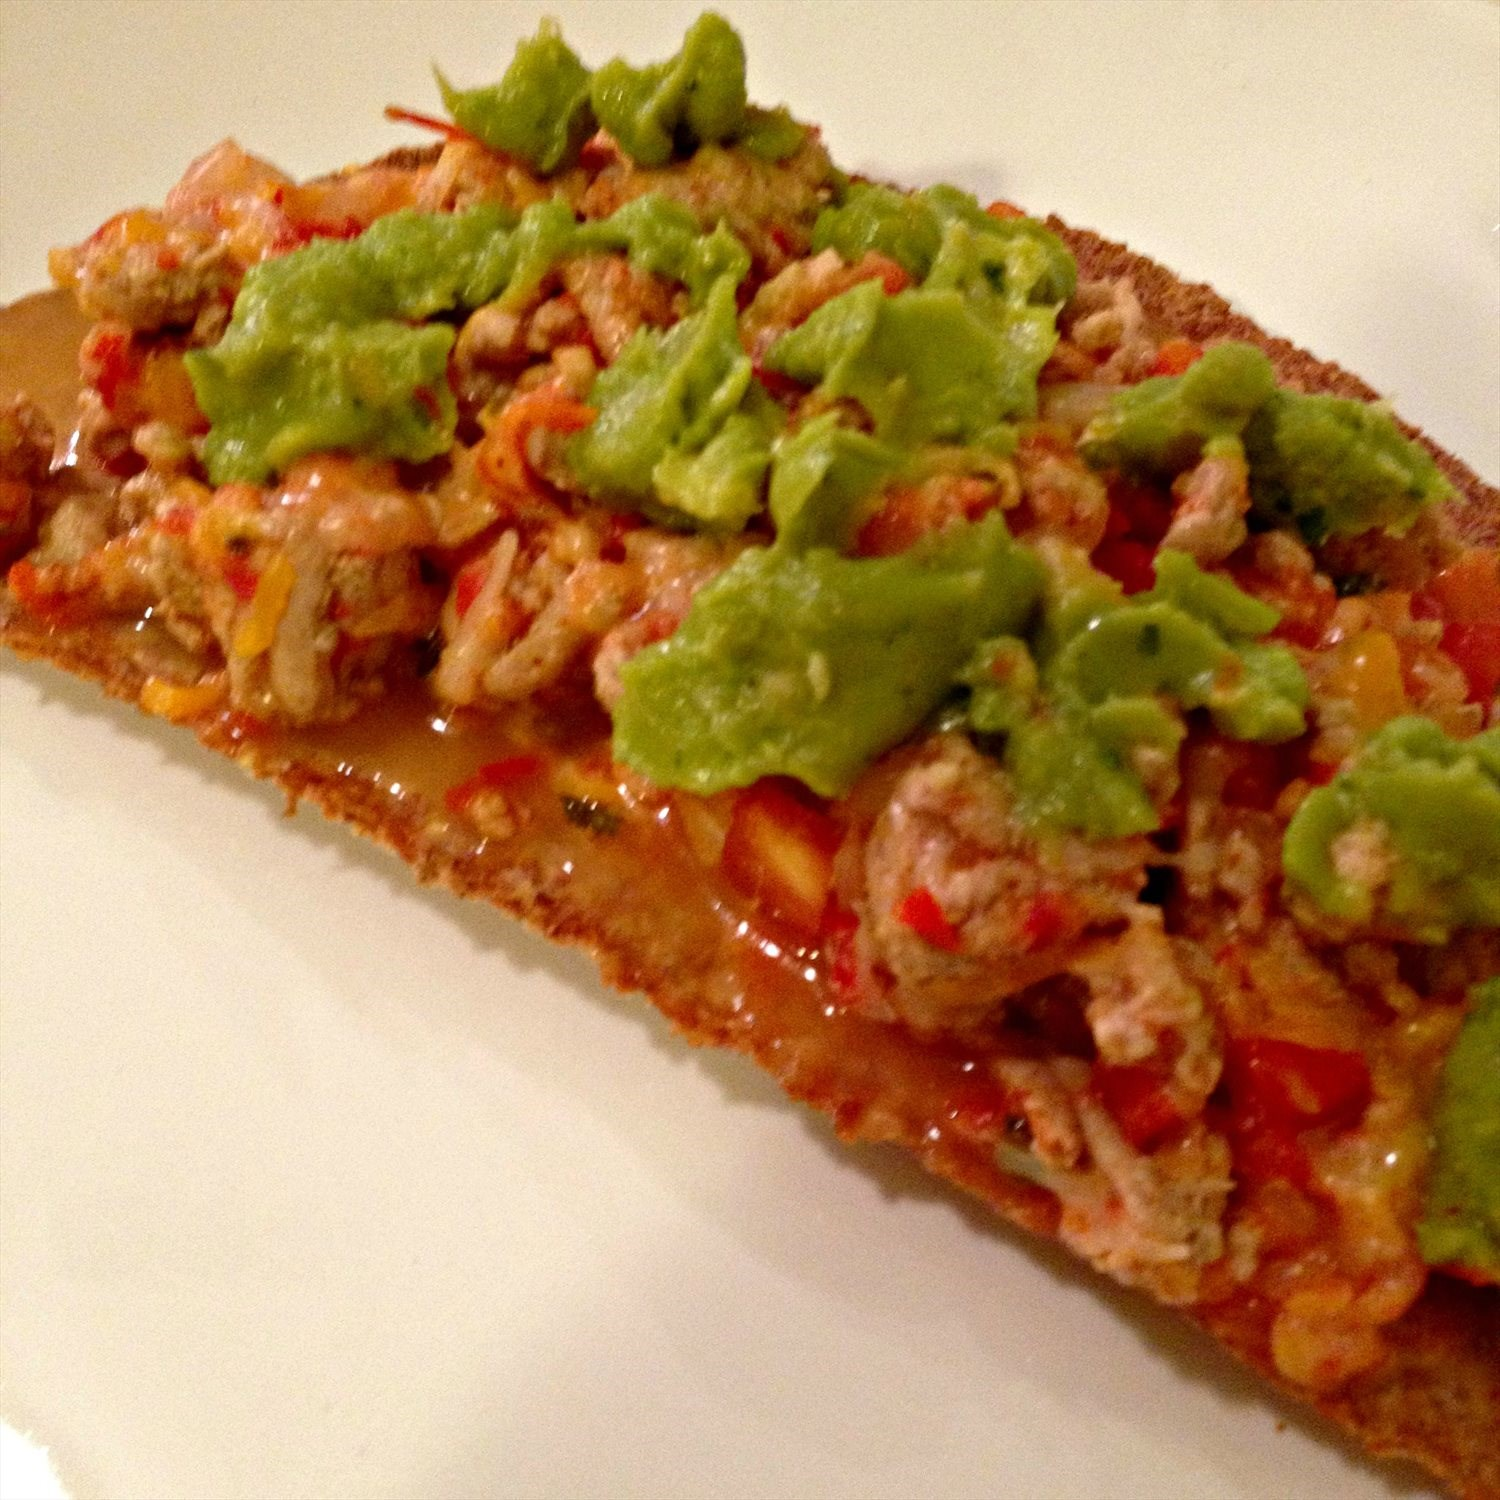 Ground Turkey Tostada